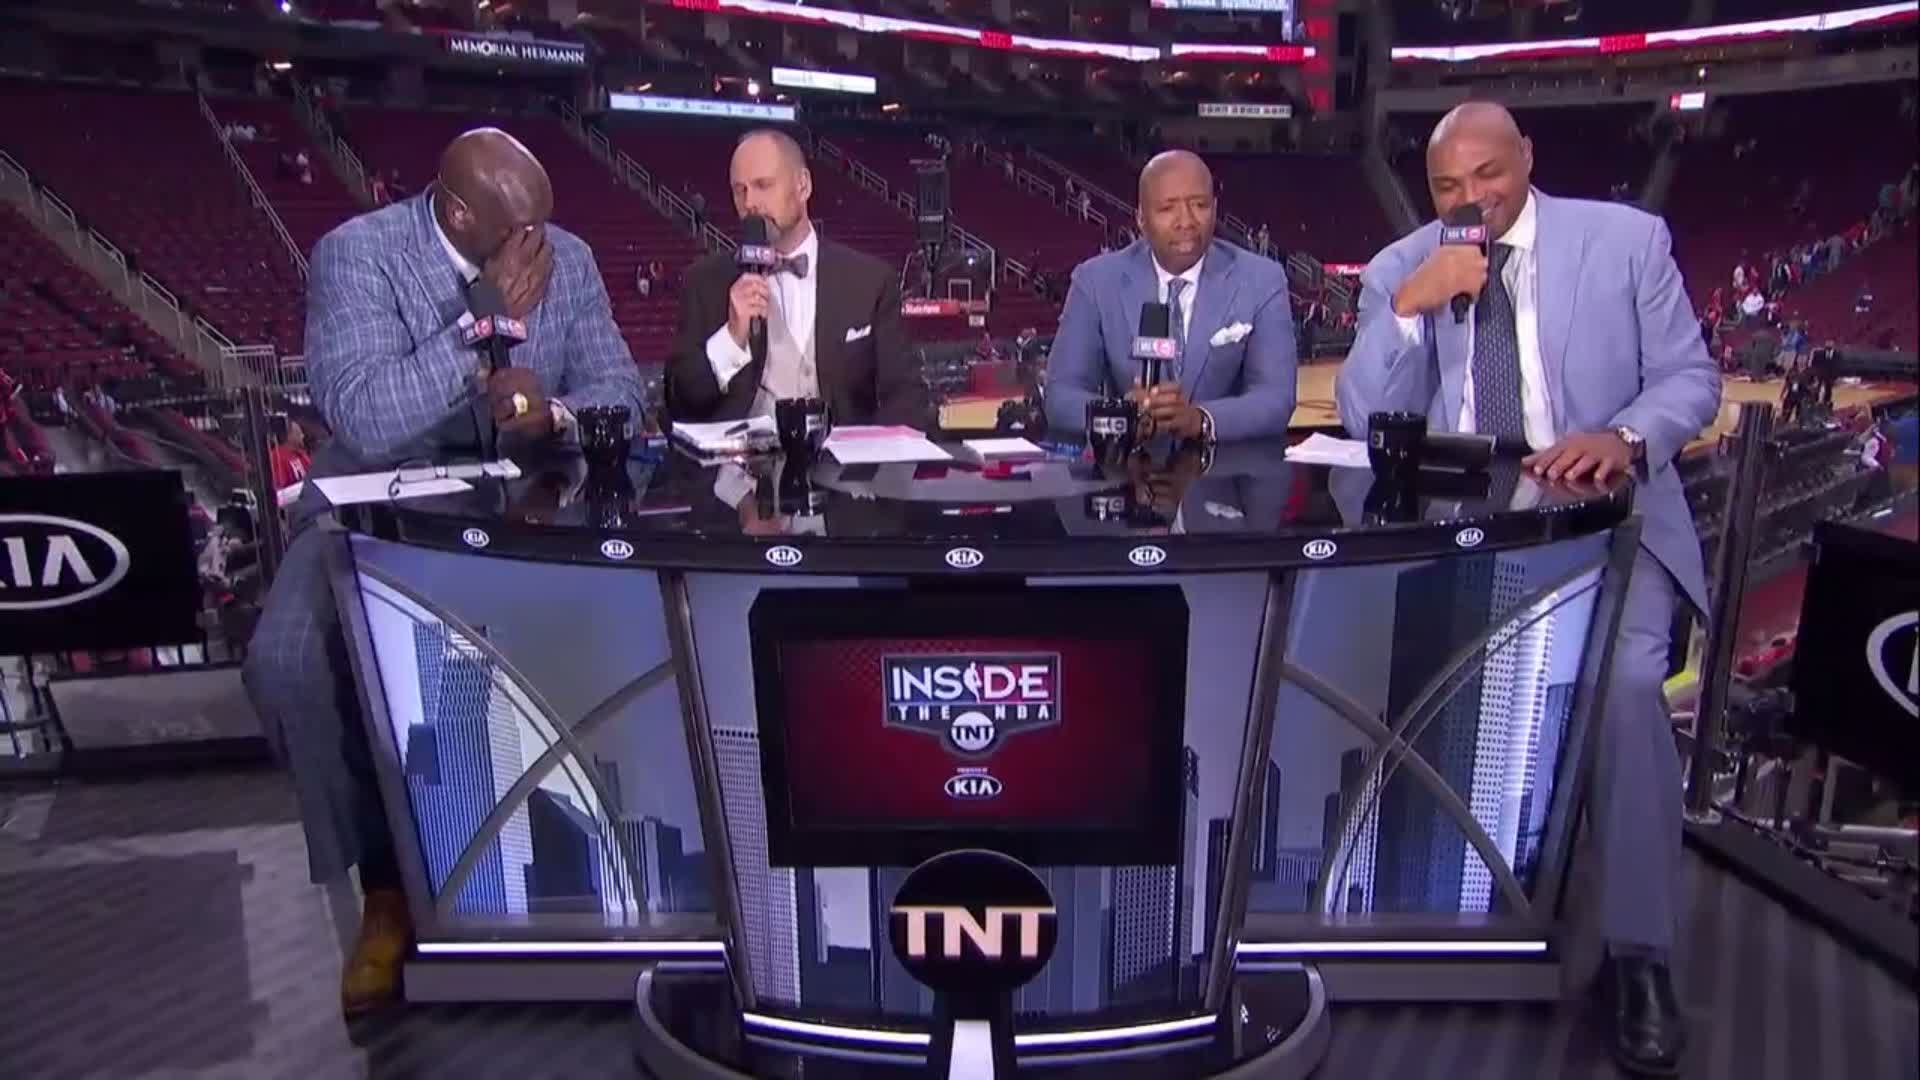 Shaq & Chuck are even more upset after Game 1 ��  #InsideTheNBA pres. by @Kia NOW on TNT! https://t.co/bI0v1VpQg9